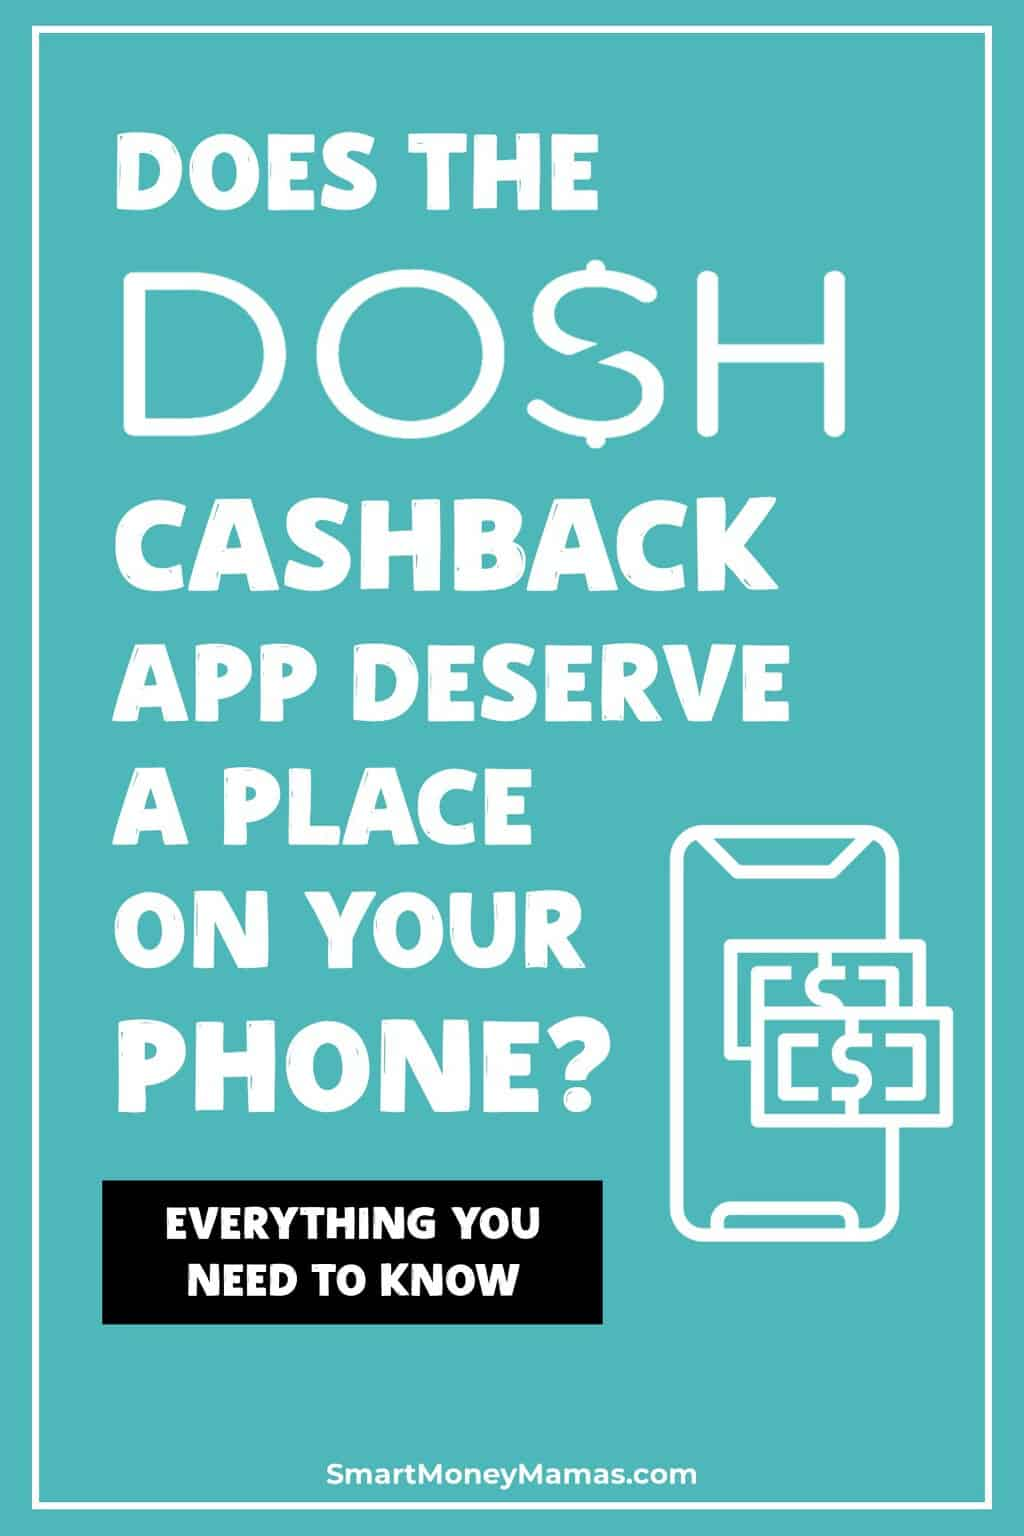 Want to earn cash back for purchases you\'re already making every day? Dosh lets you do just that, automatically. No taking pictures of receipts or submitting purchases. Discover everything you need to know about the app in this review - then download to claim your free $5 bonus! #smartmoneymamas #appreview #moneytips #moneyapps #cashback